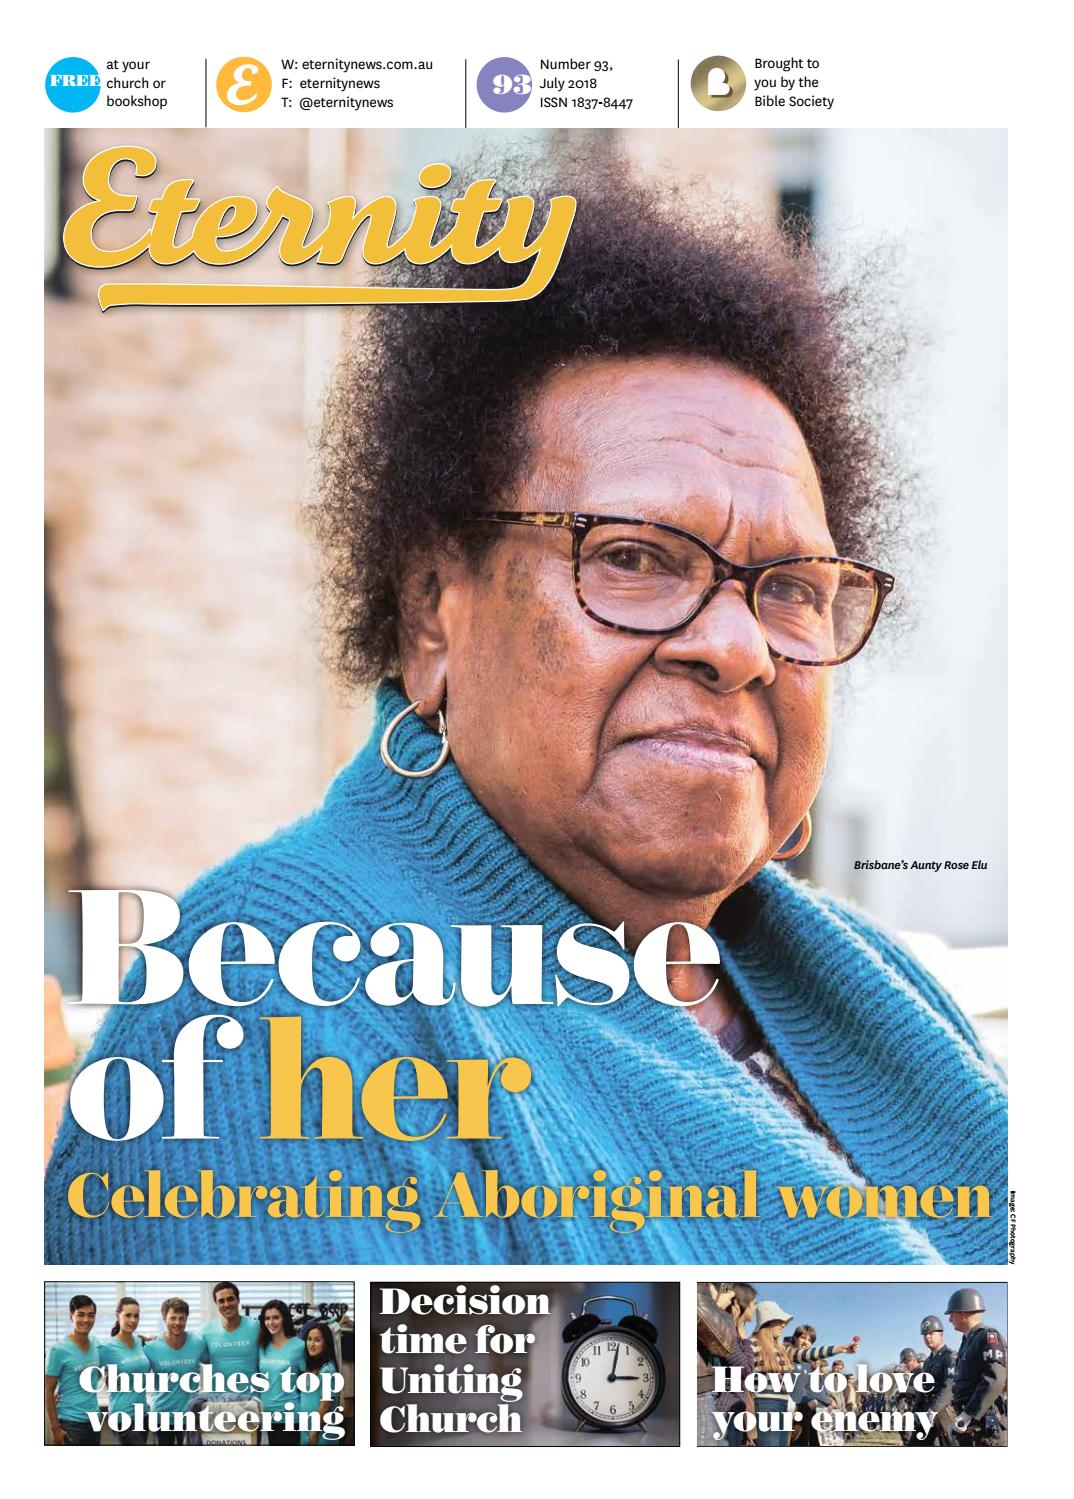 Eternity - July 2018 - Issue 93 by Bible Society Australia - issuu